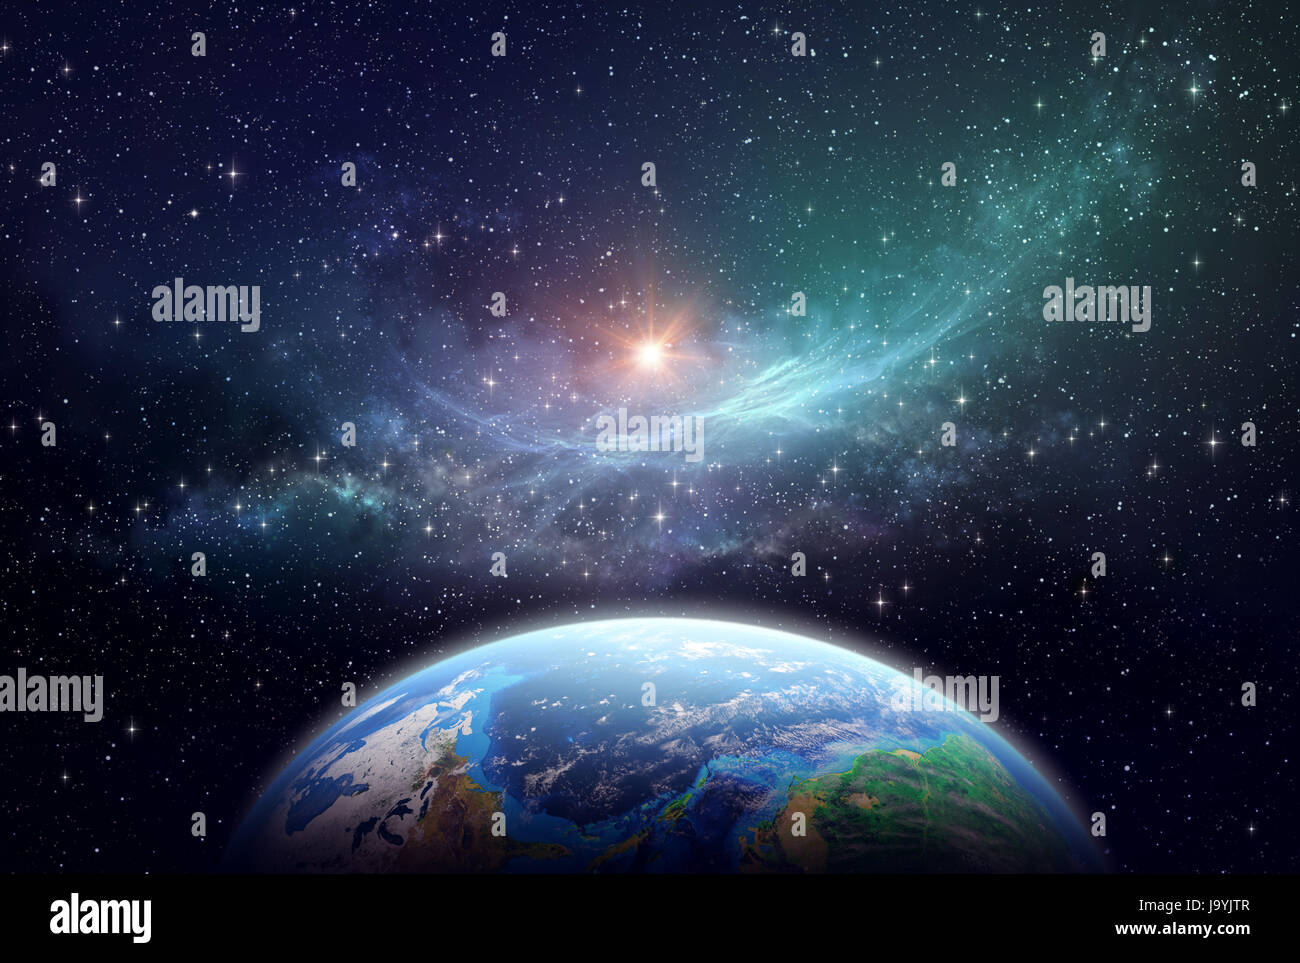 Extrasolar planet, star cluster and nebula in outer space - Stock Image